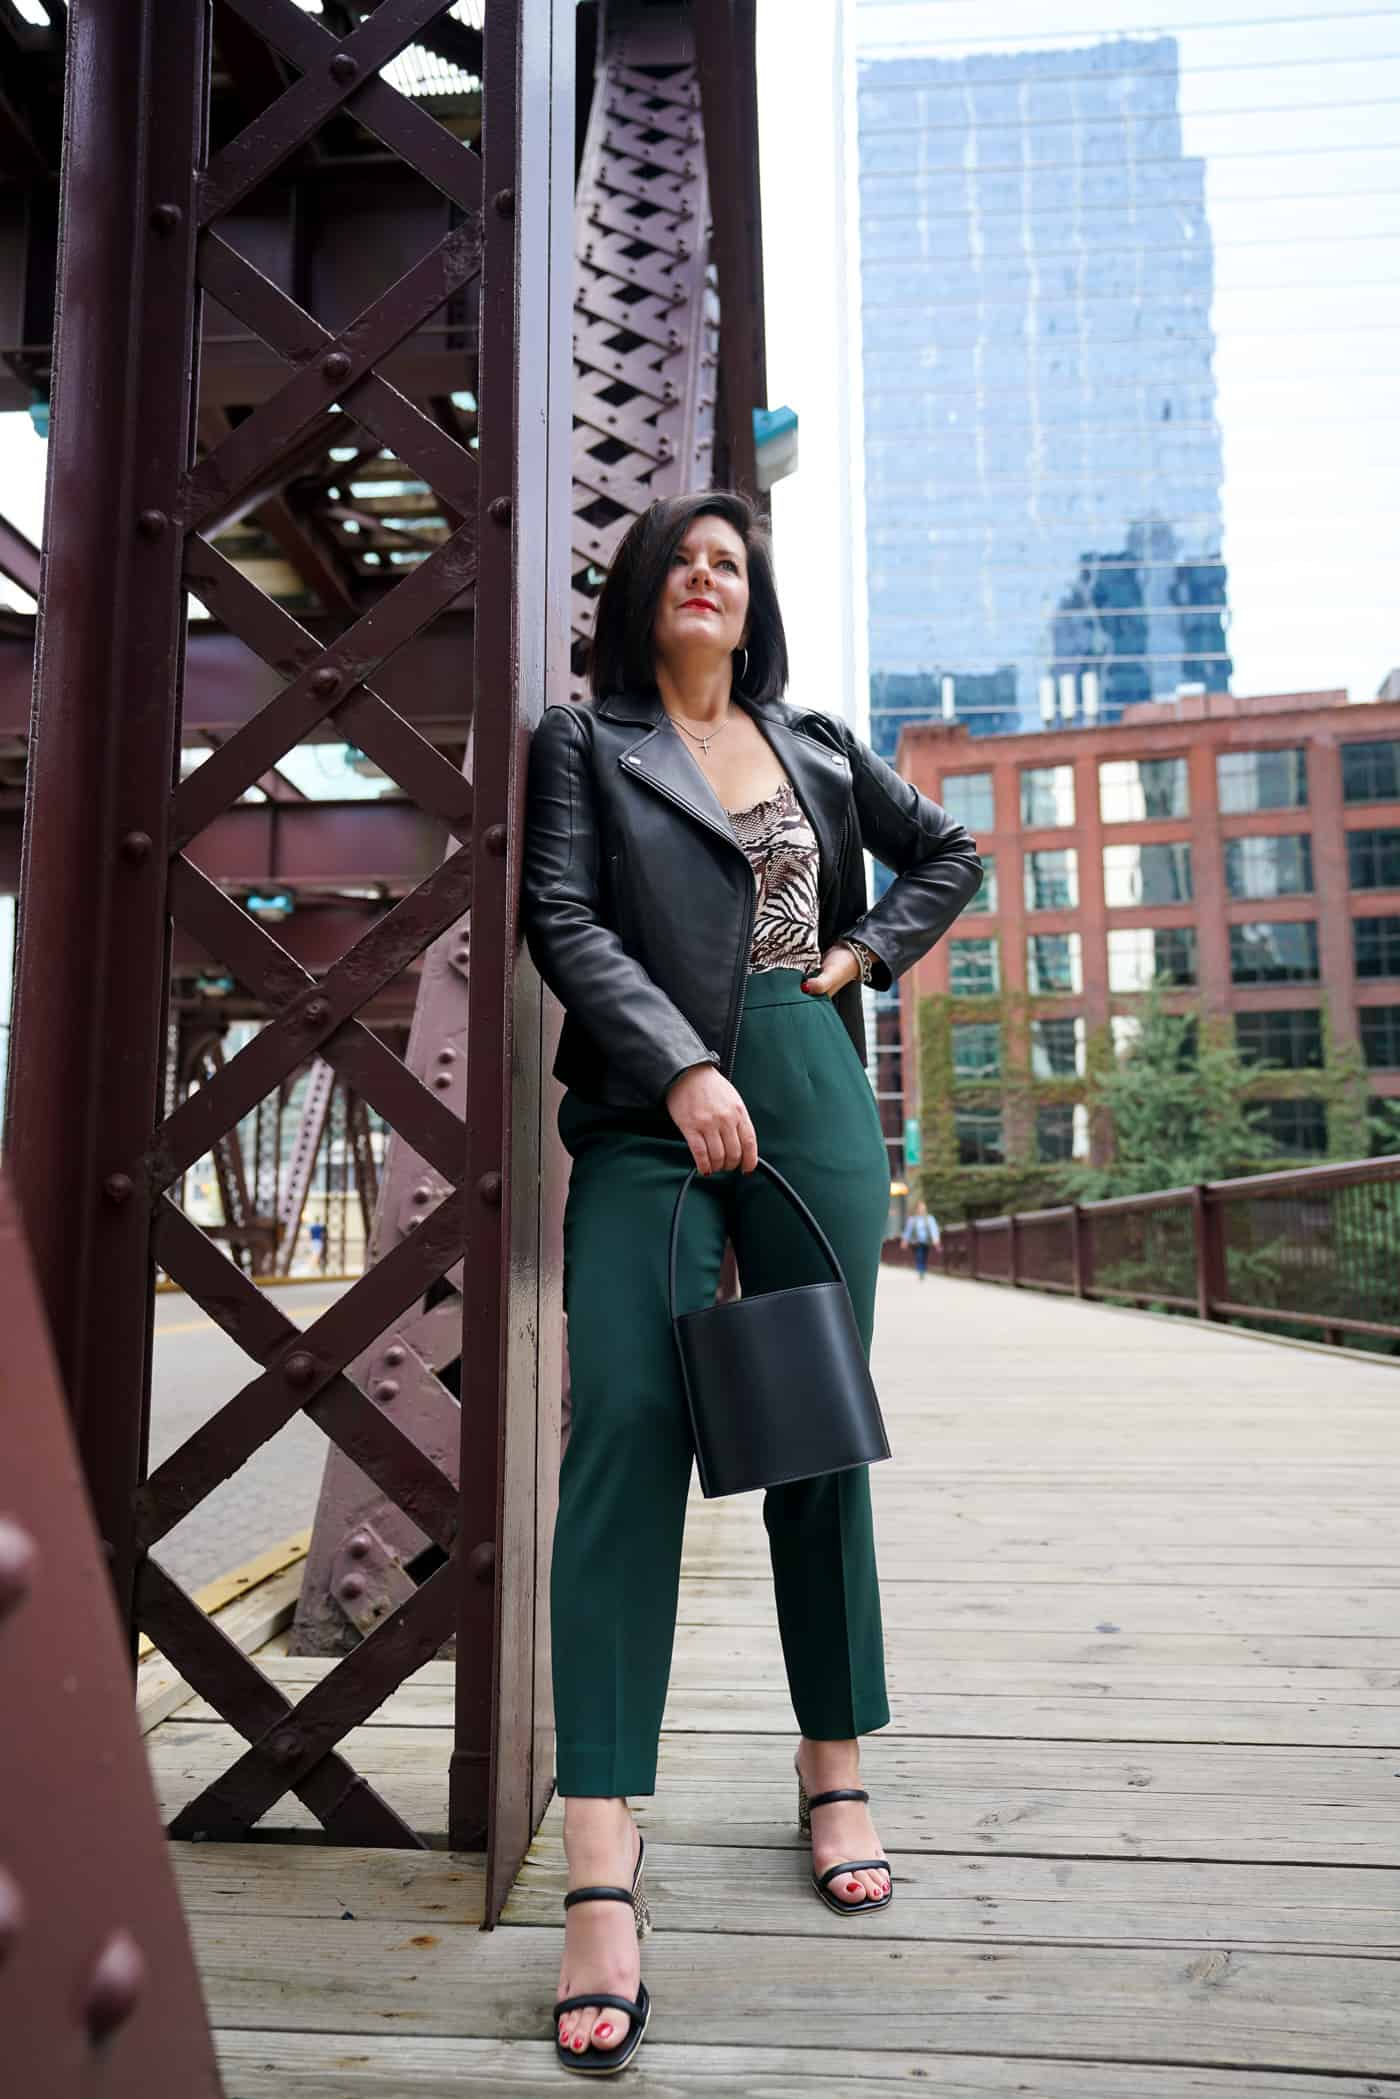 A women wearing green aritzia pants and a black leather jacket